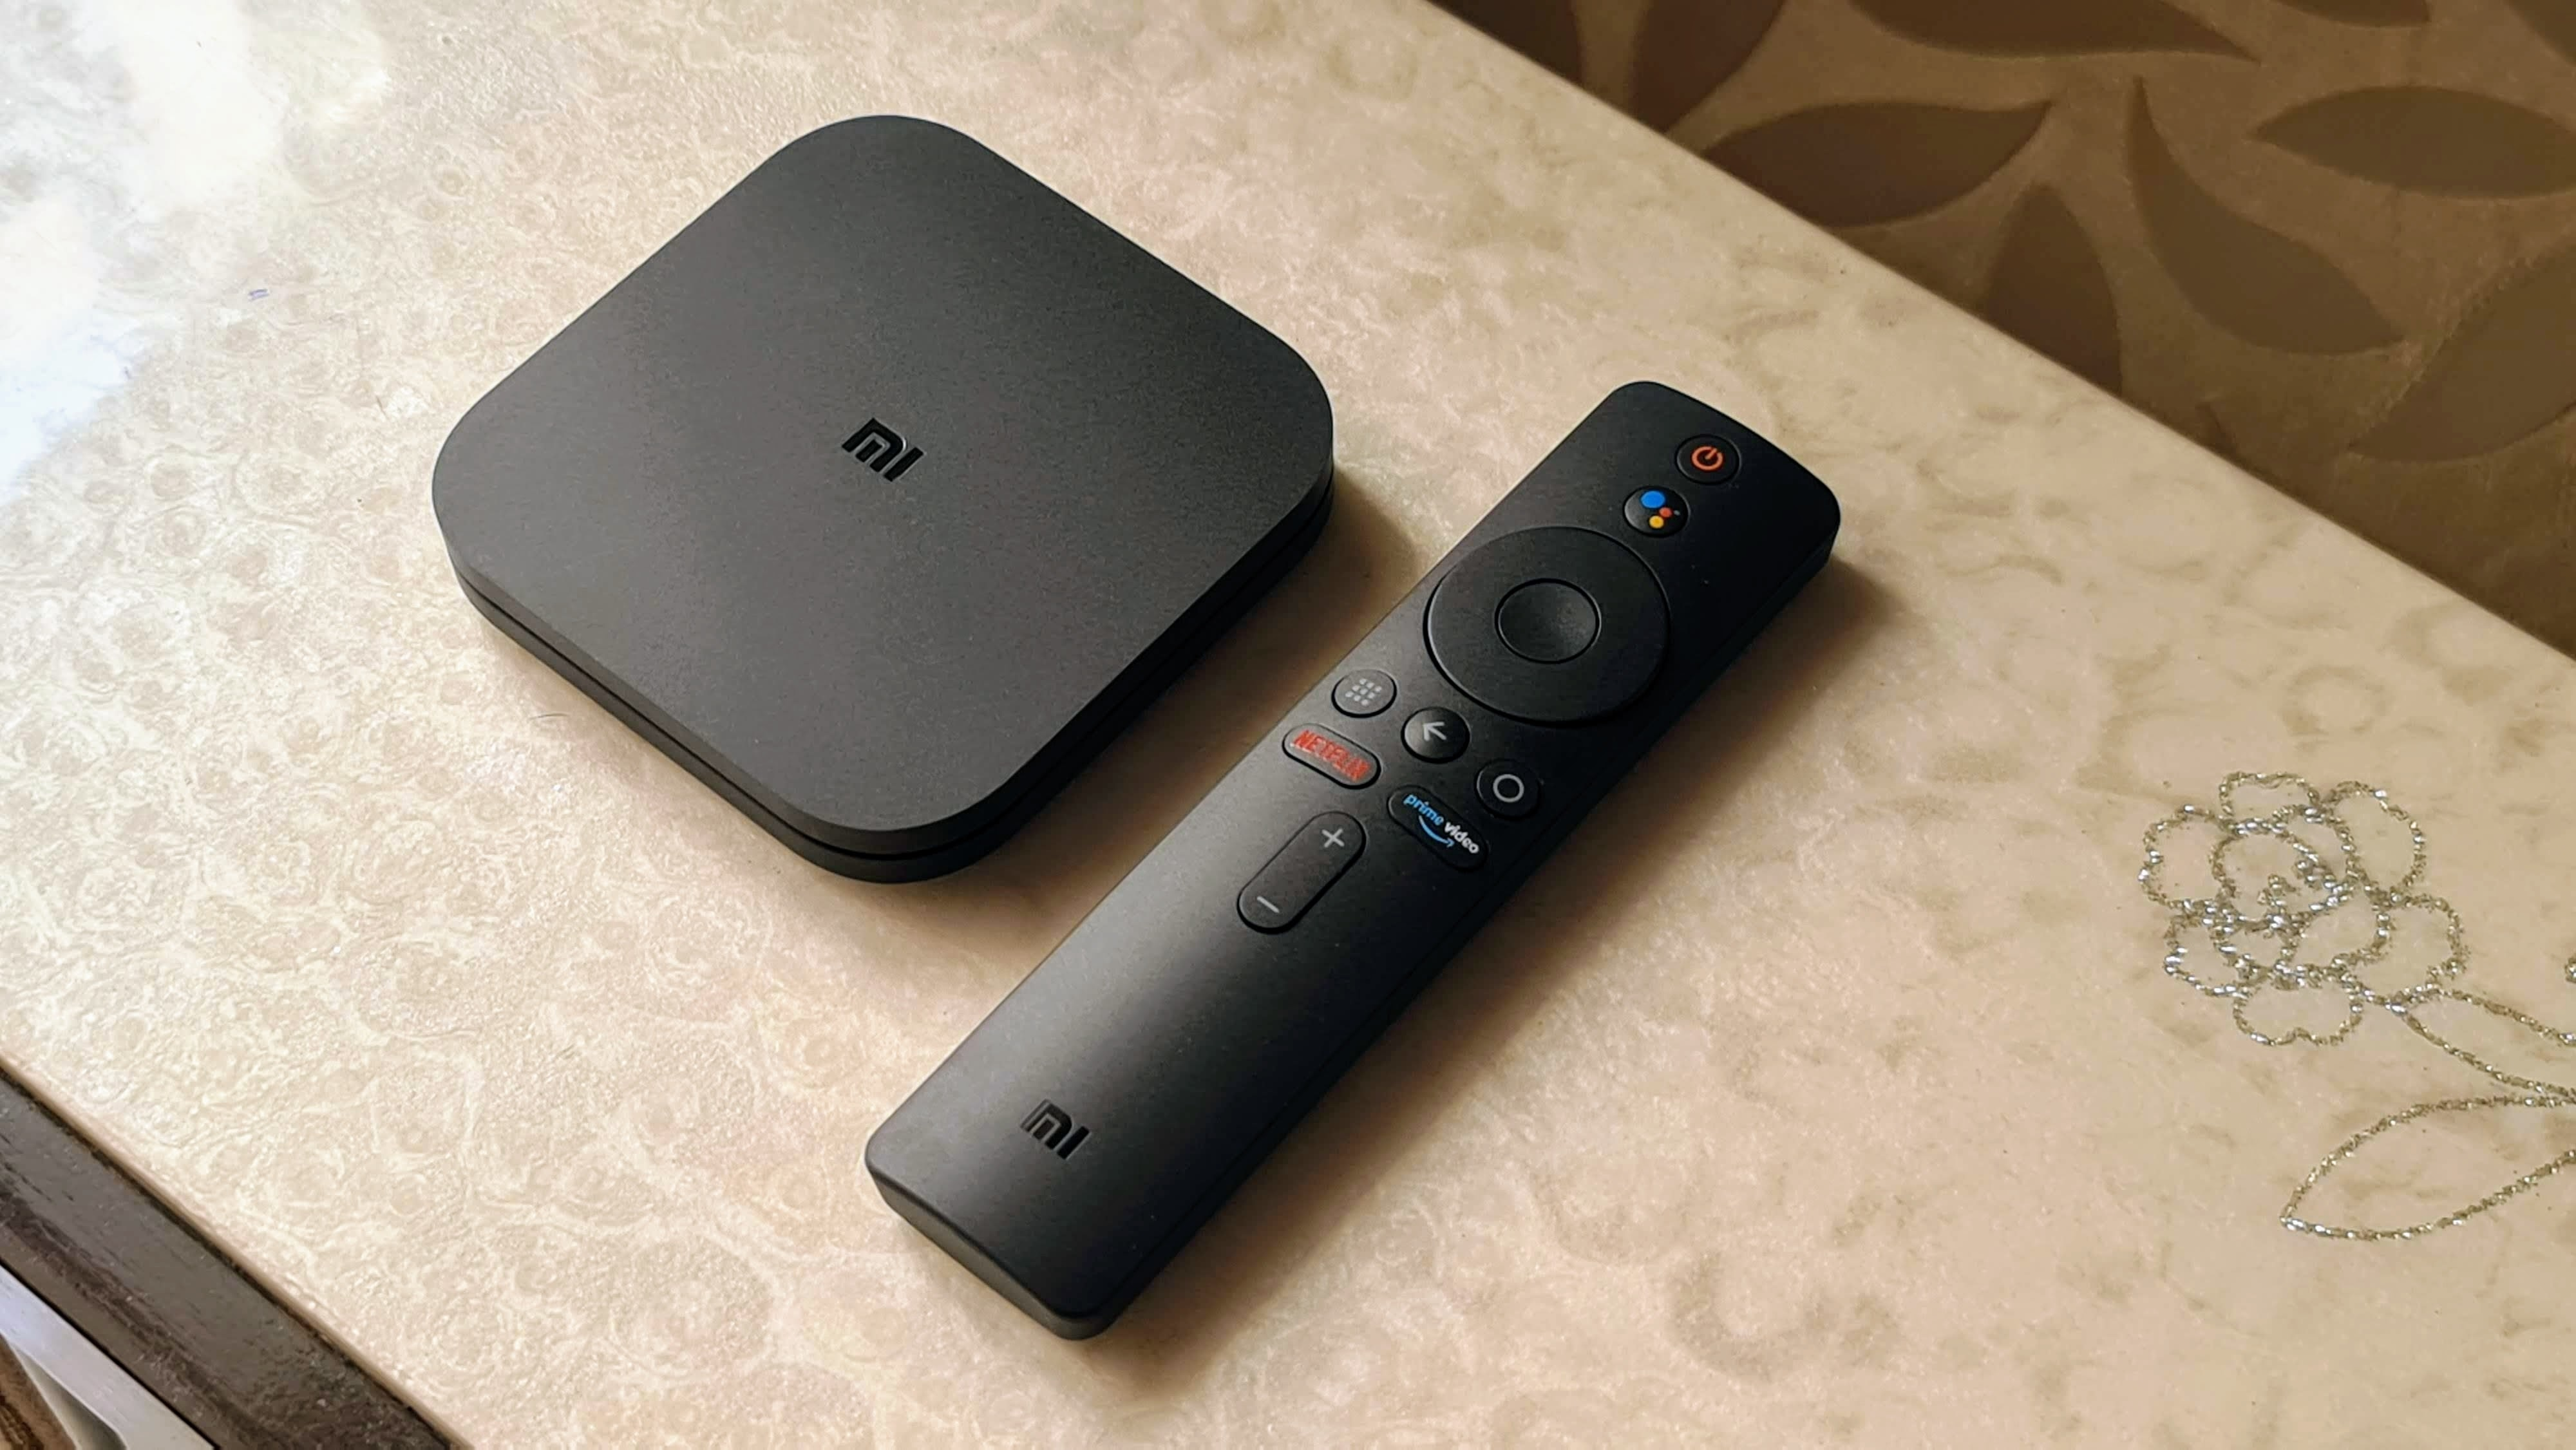 Mi Box 4K along with the remote controller.